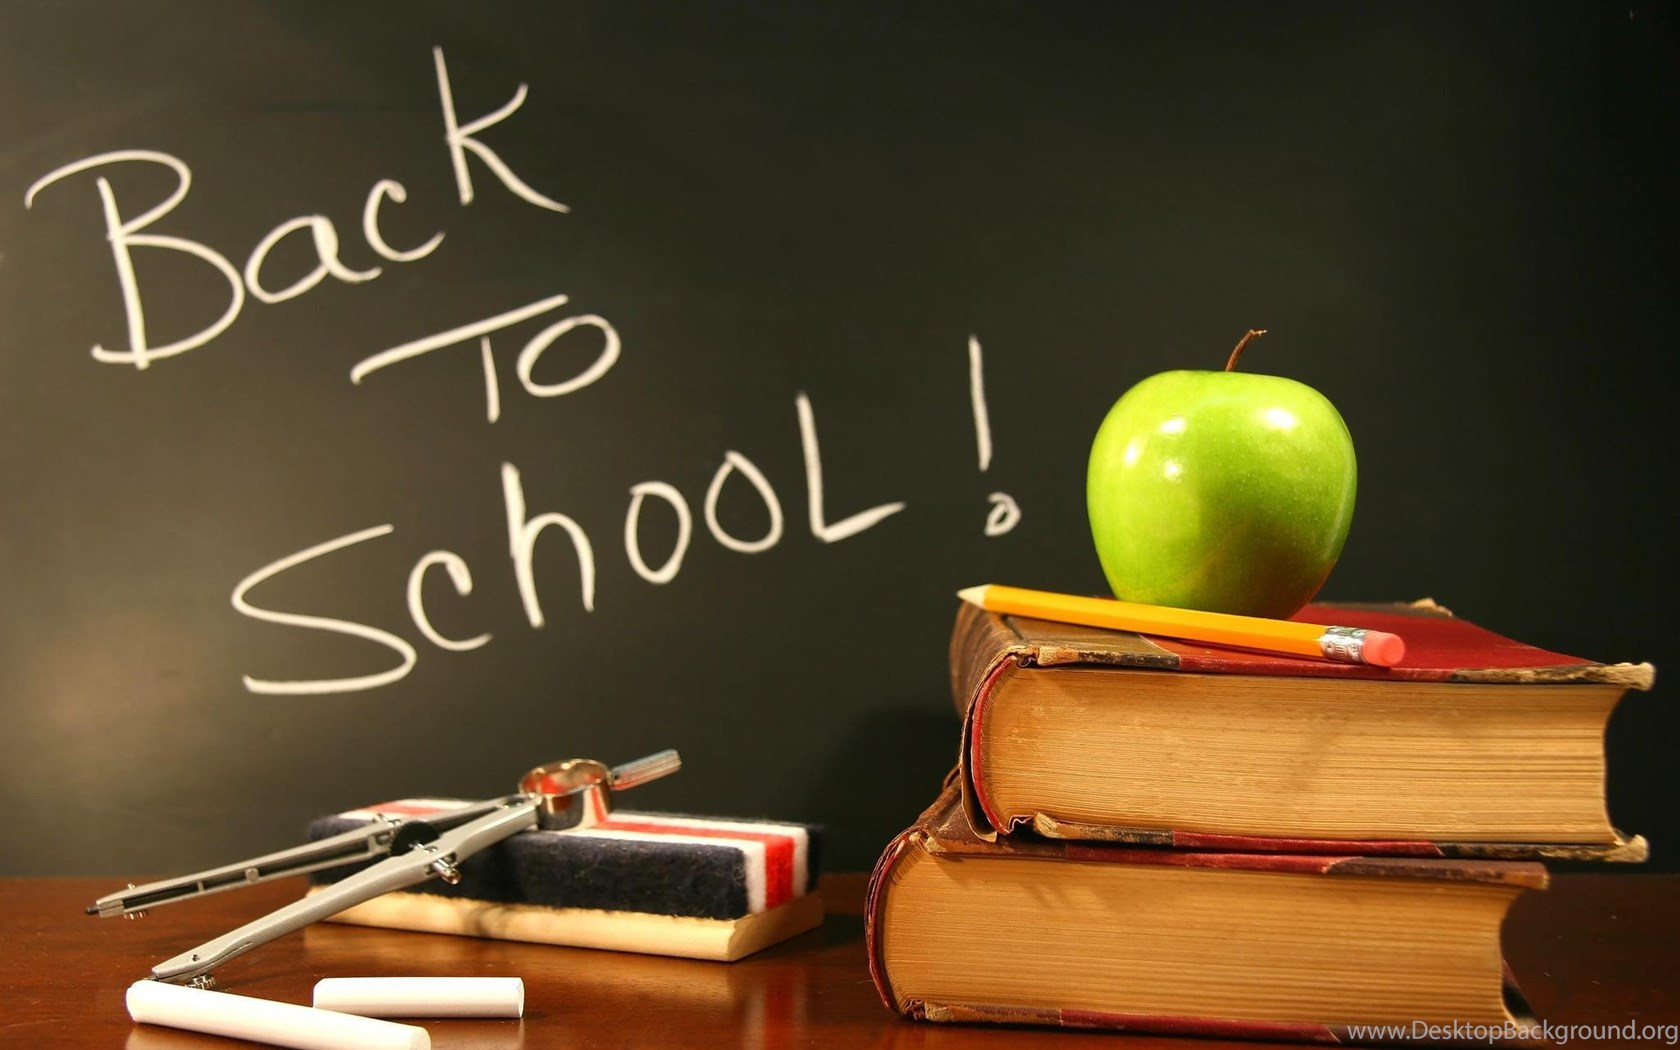 Back To School HD Wallpapers Pictures Images Photos Desktop 1680x1050